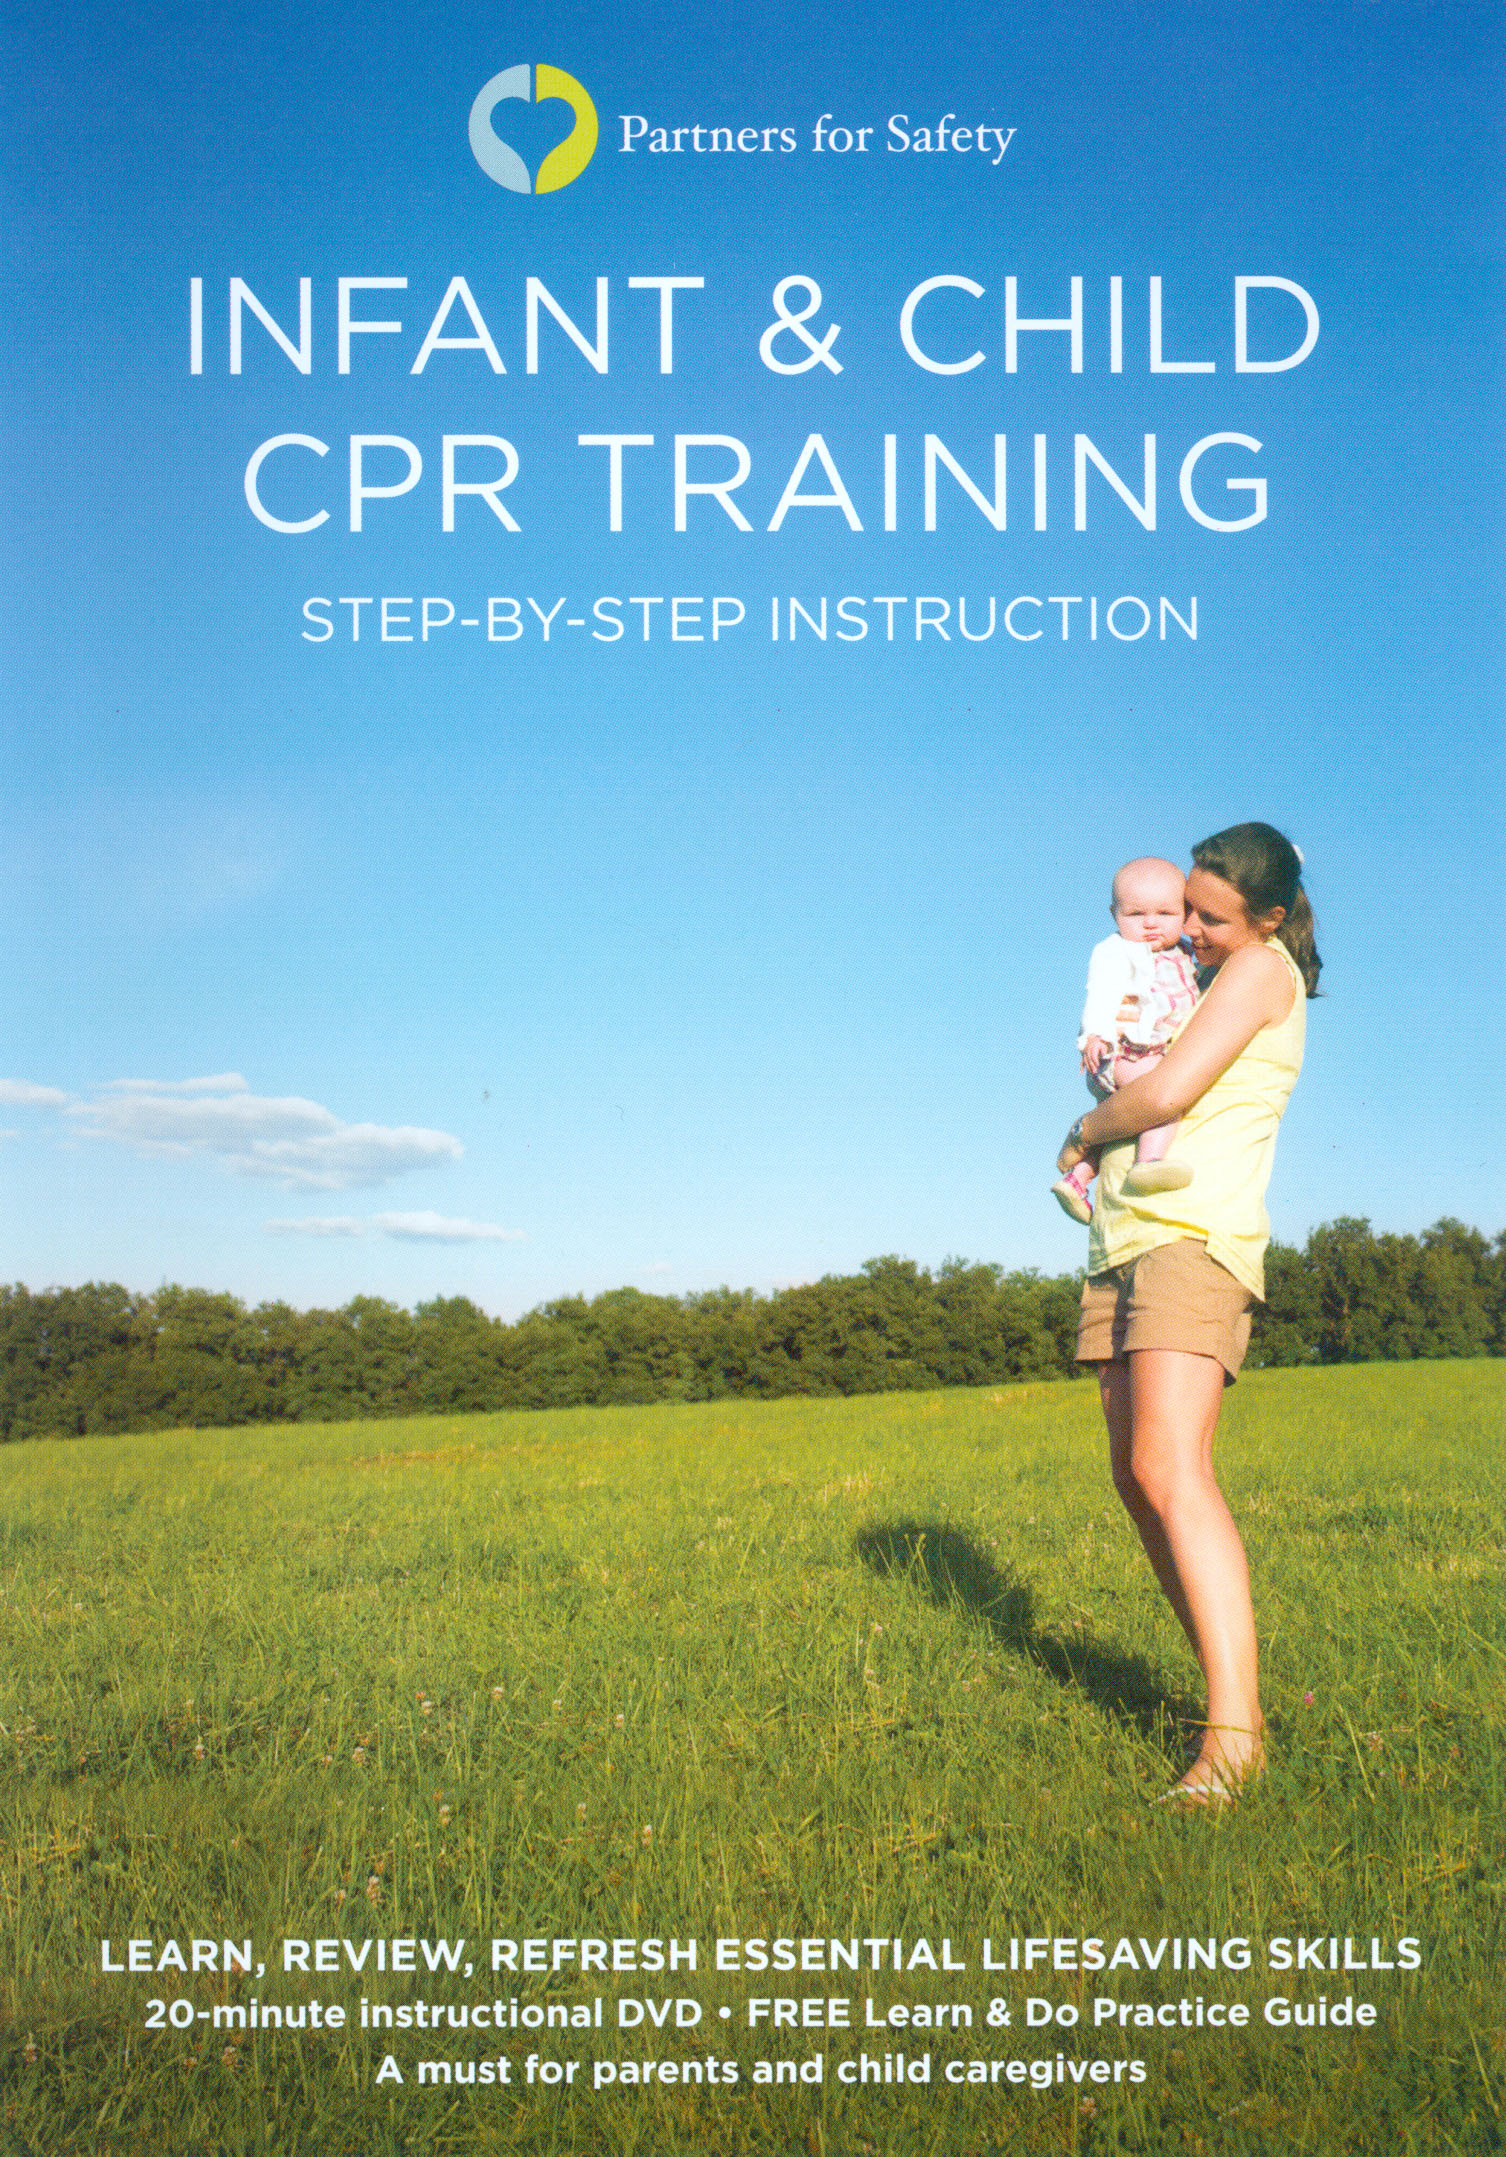 Step-By-Step CPR Training for Infants & Children